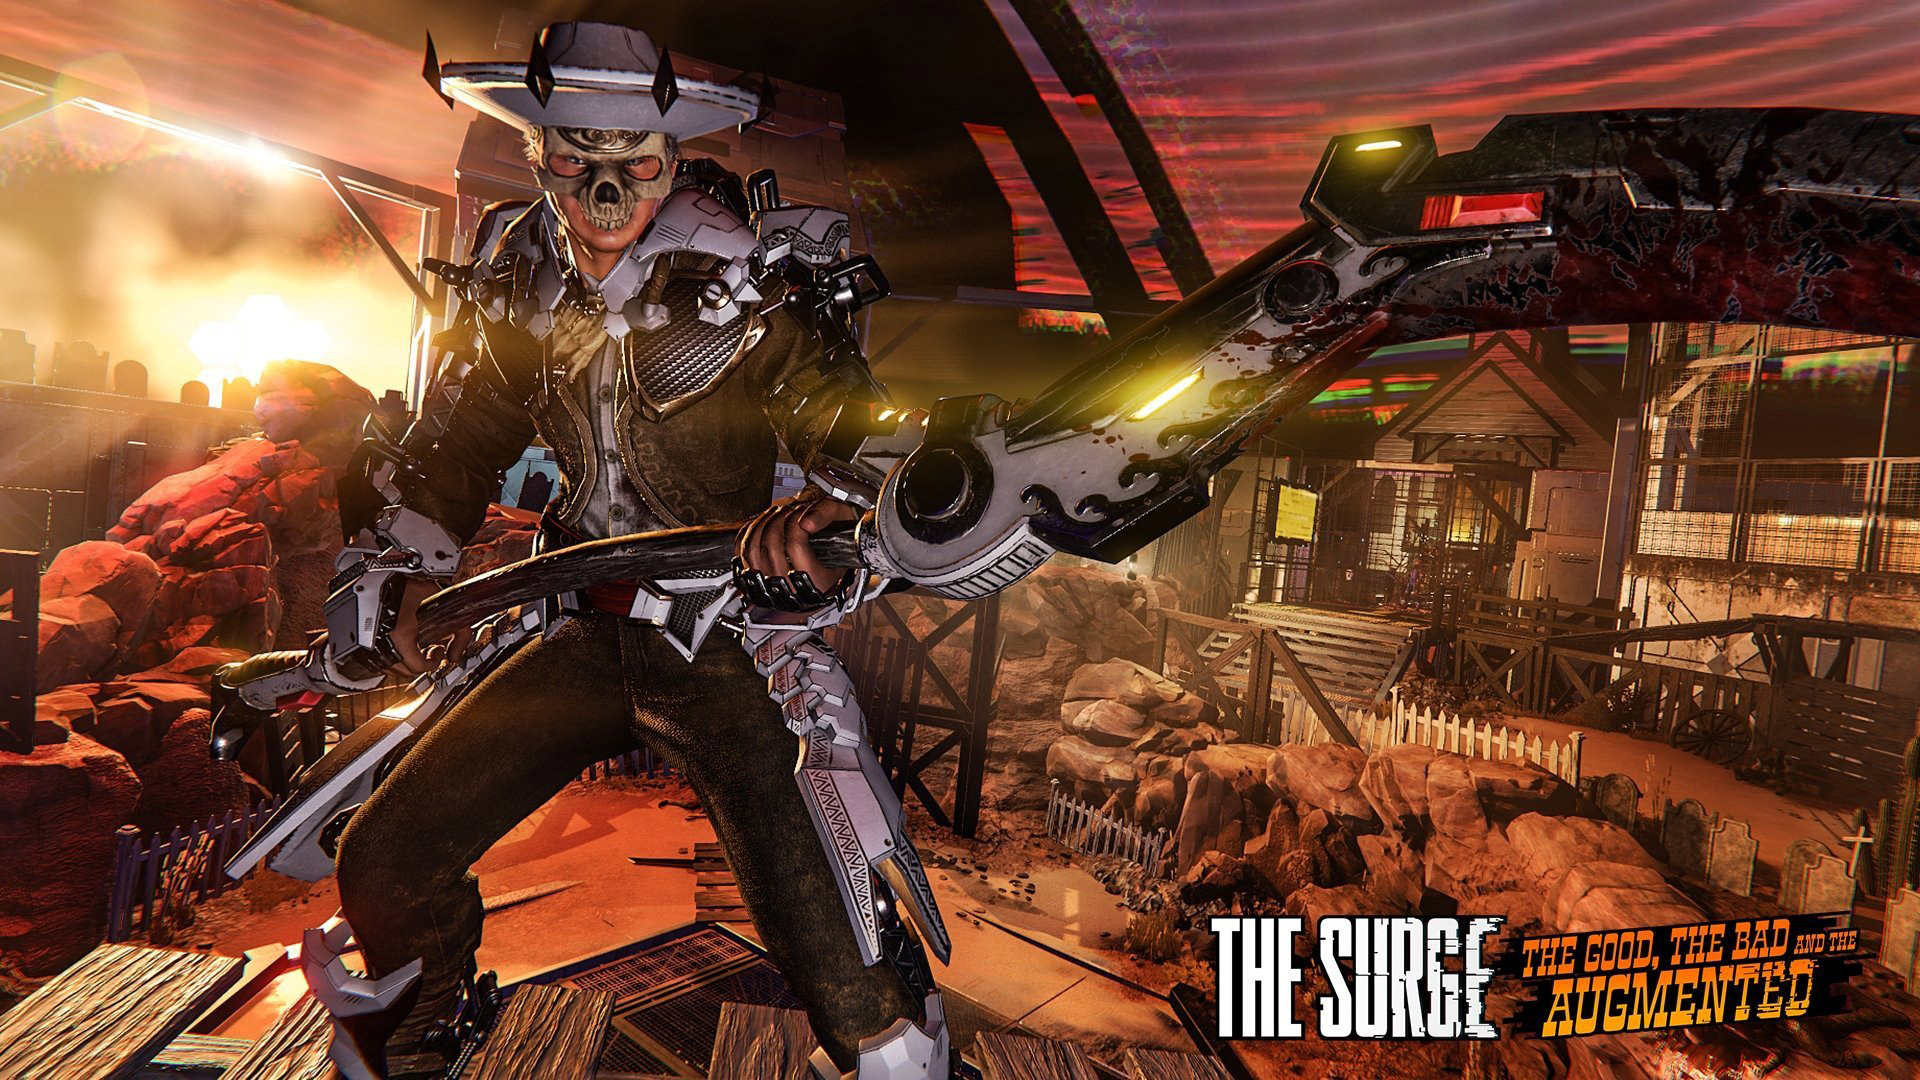 Free The Surge Wallpaper in 1920x1080